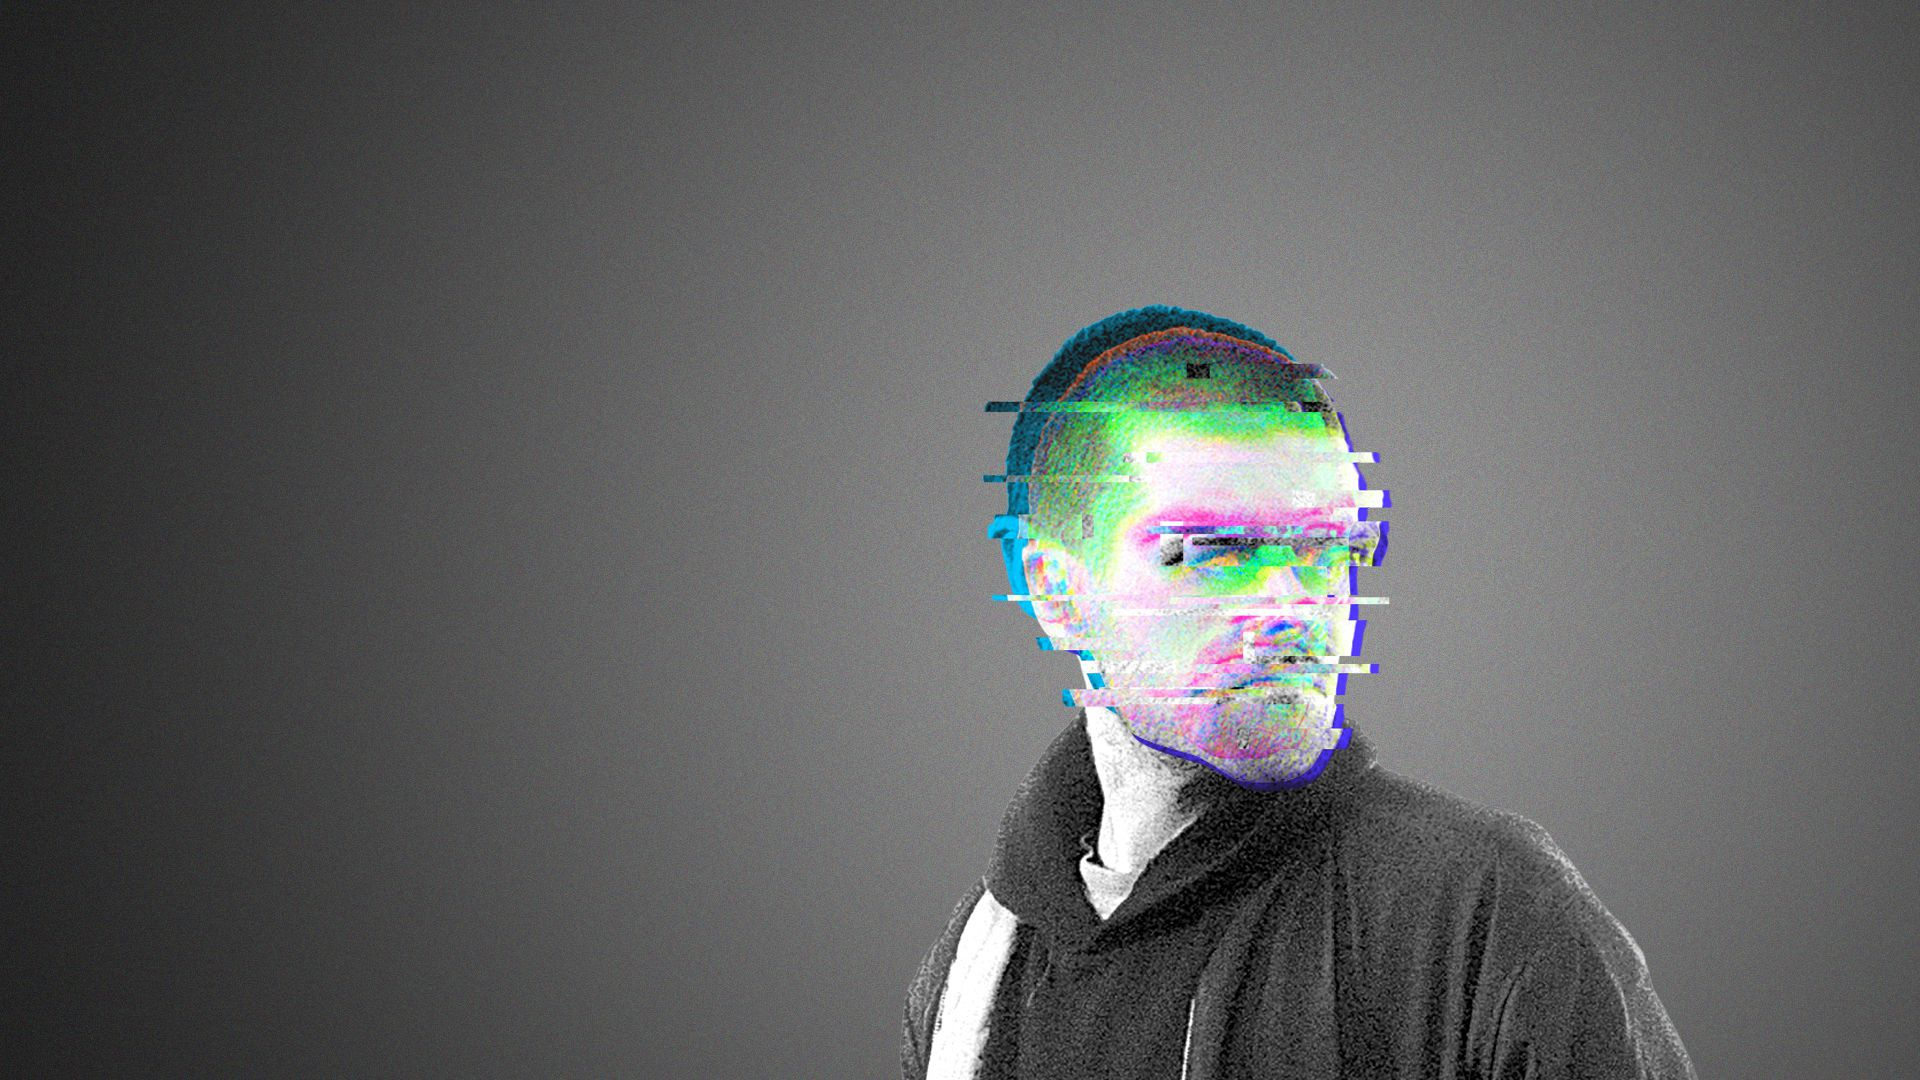 Illustration of a man whose face is obscured by digital glitches.